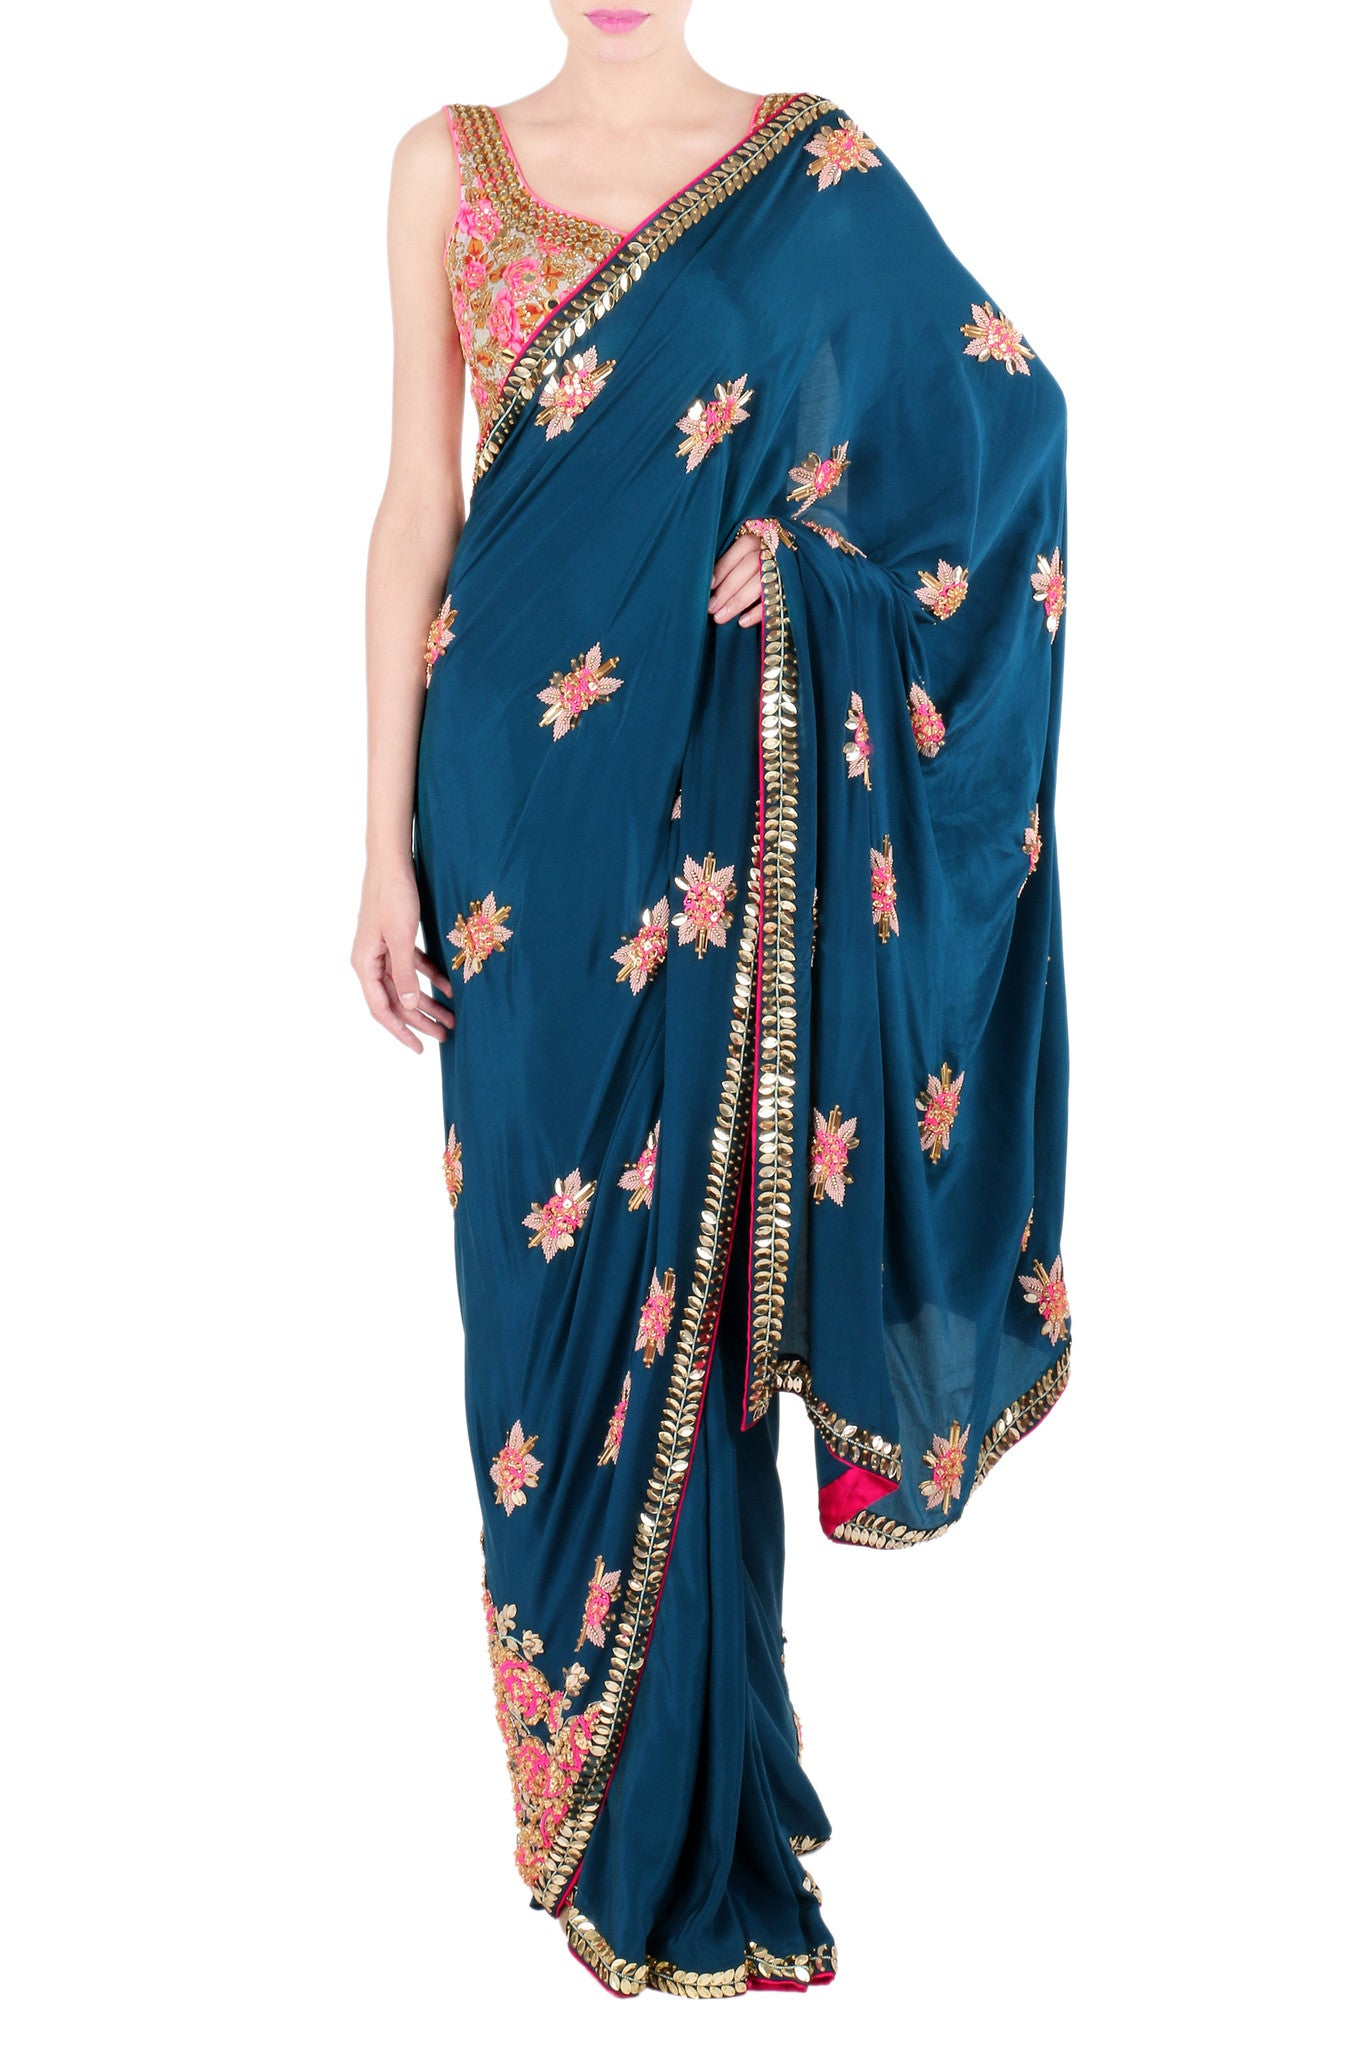 Sapphire Blue Crepe Saree with Rose Motifs